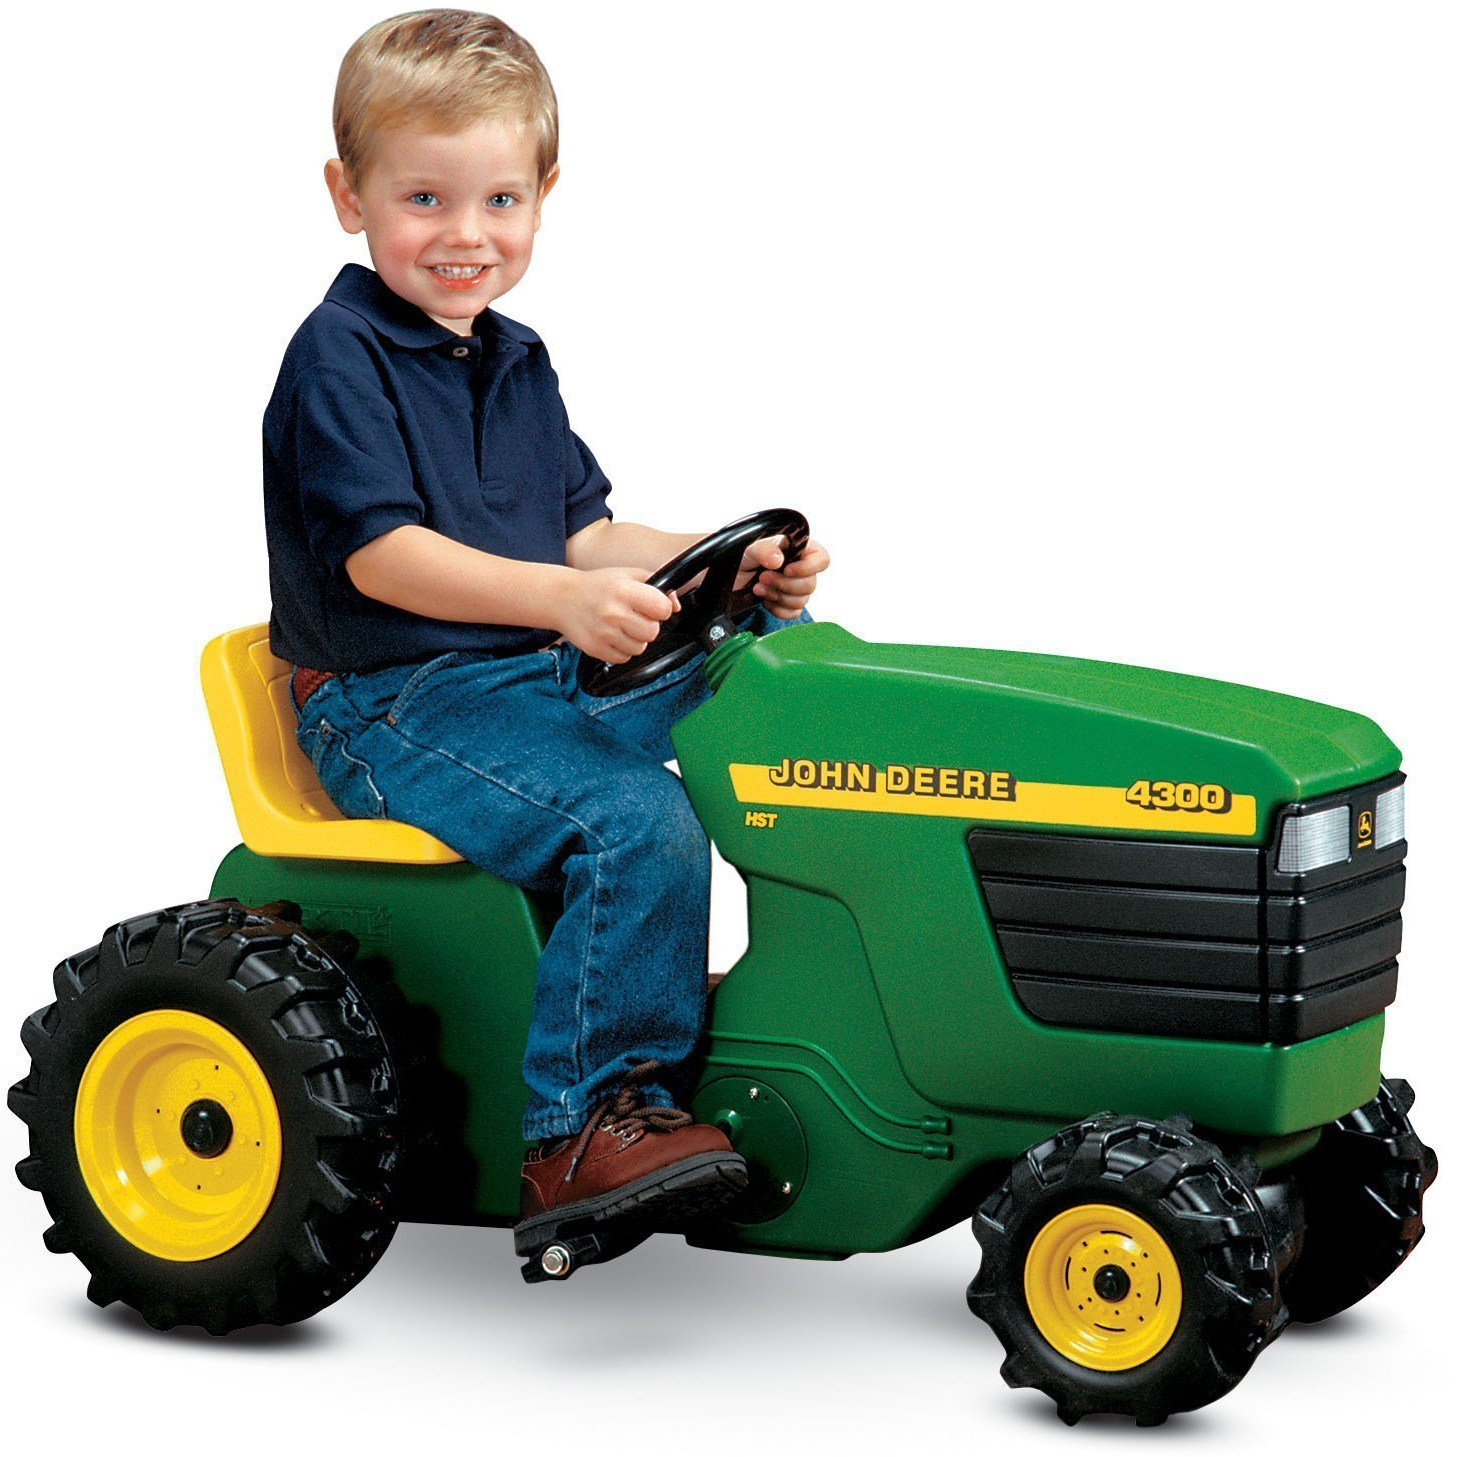 Tractor Toys For Boys : John deere kids tractor toys and ride ons product talk